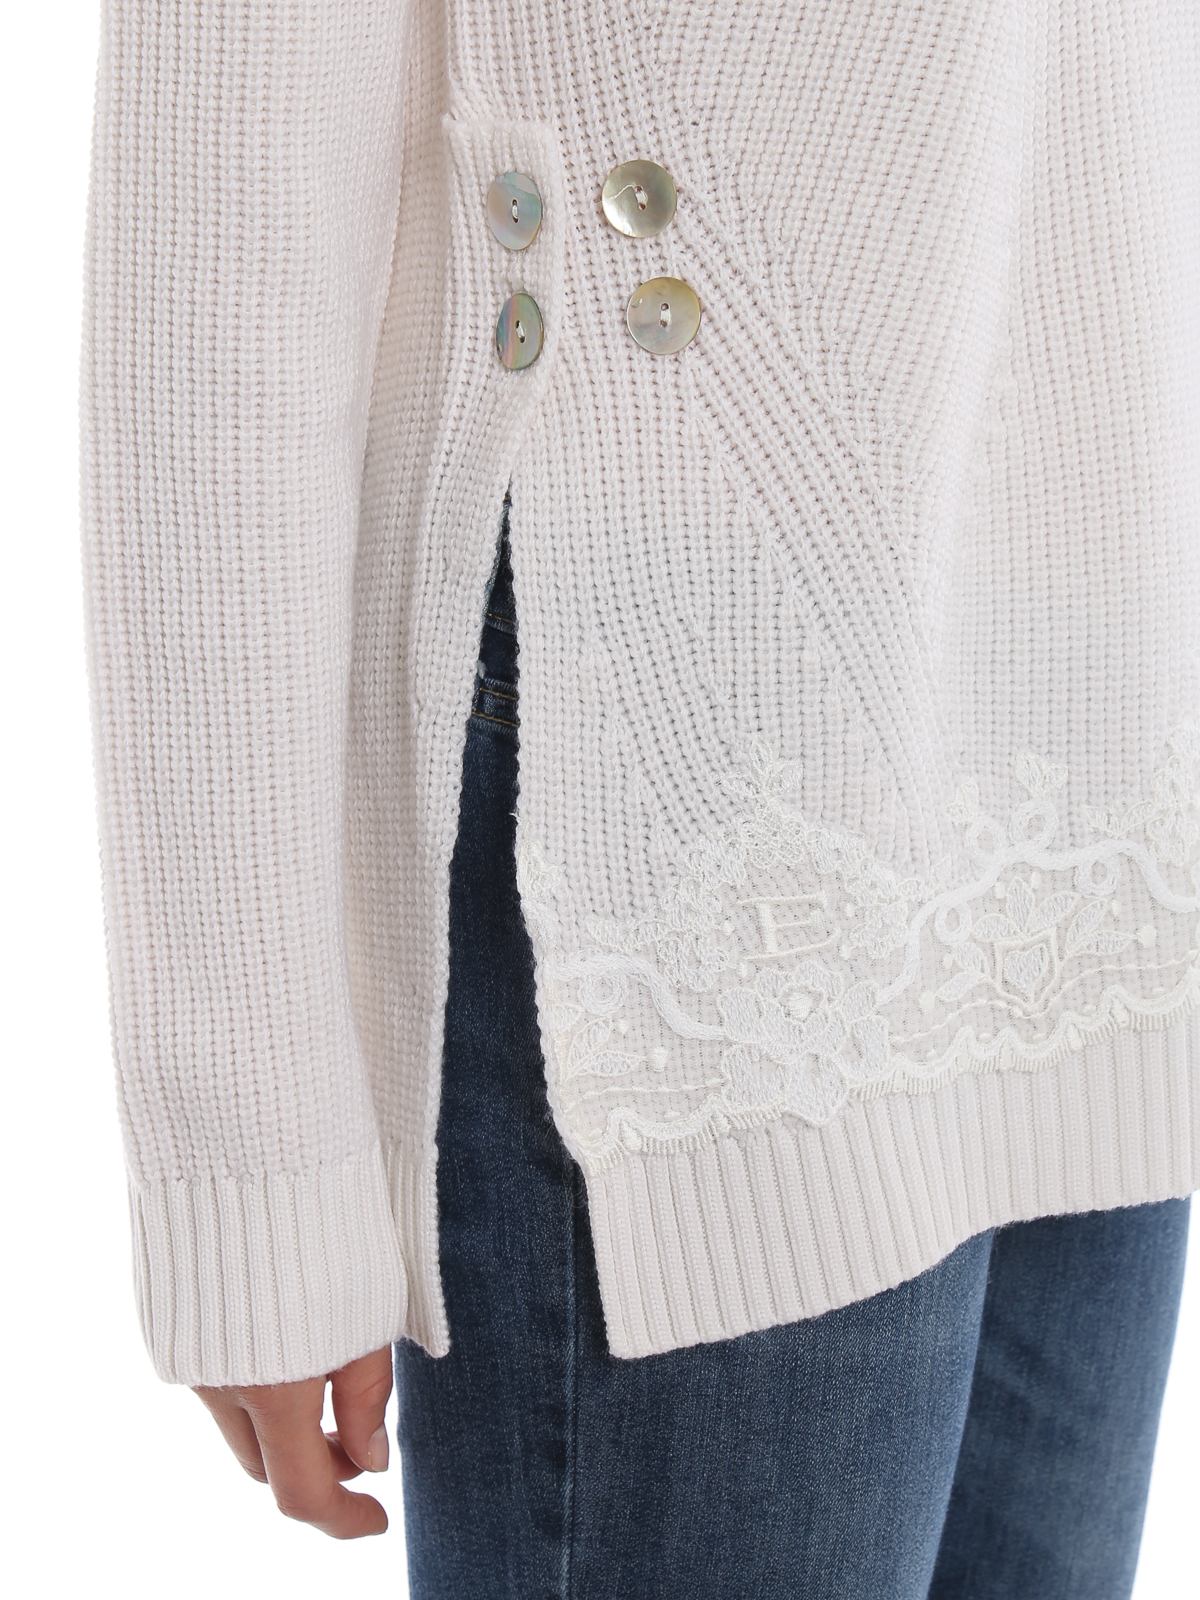 Ermanno Scervino Lace Detailed White Ribbed Wool Sweater Crew Necks Mg1900249